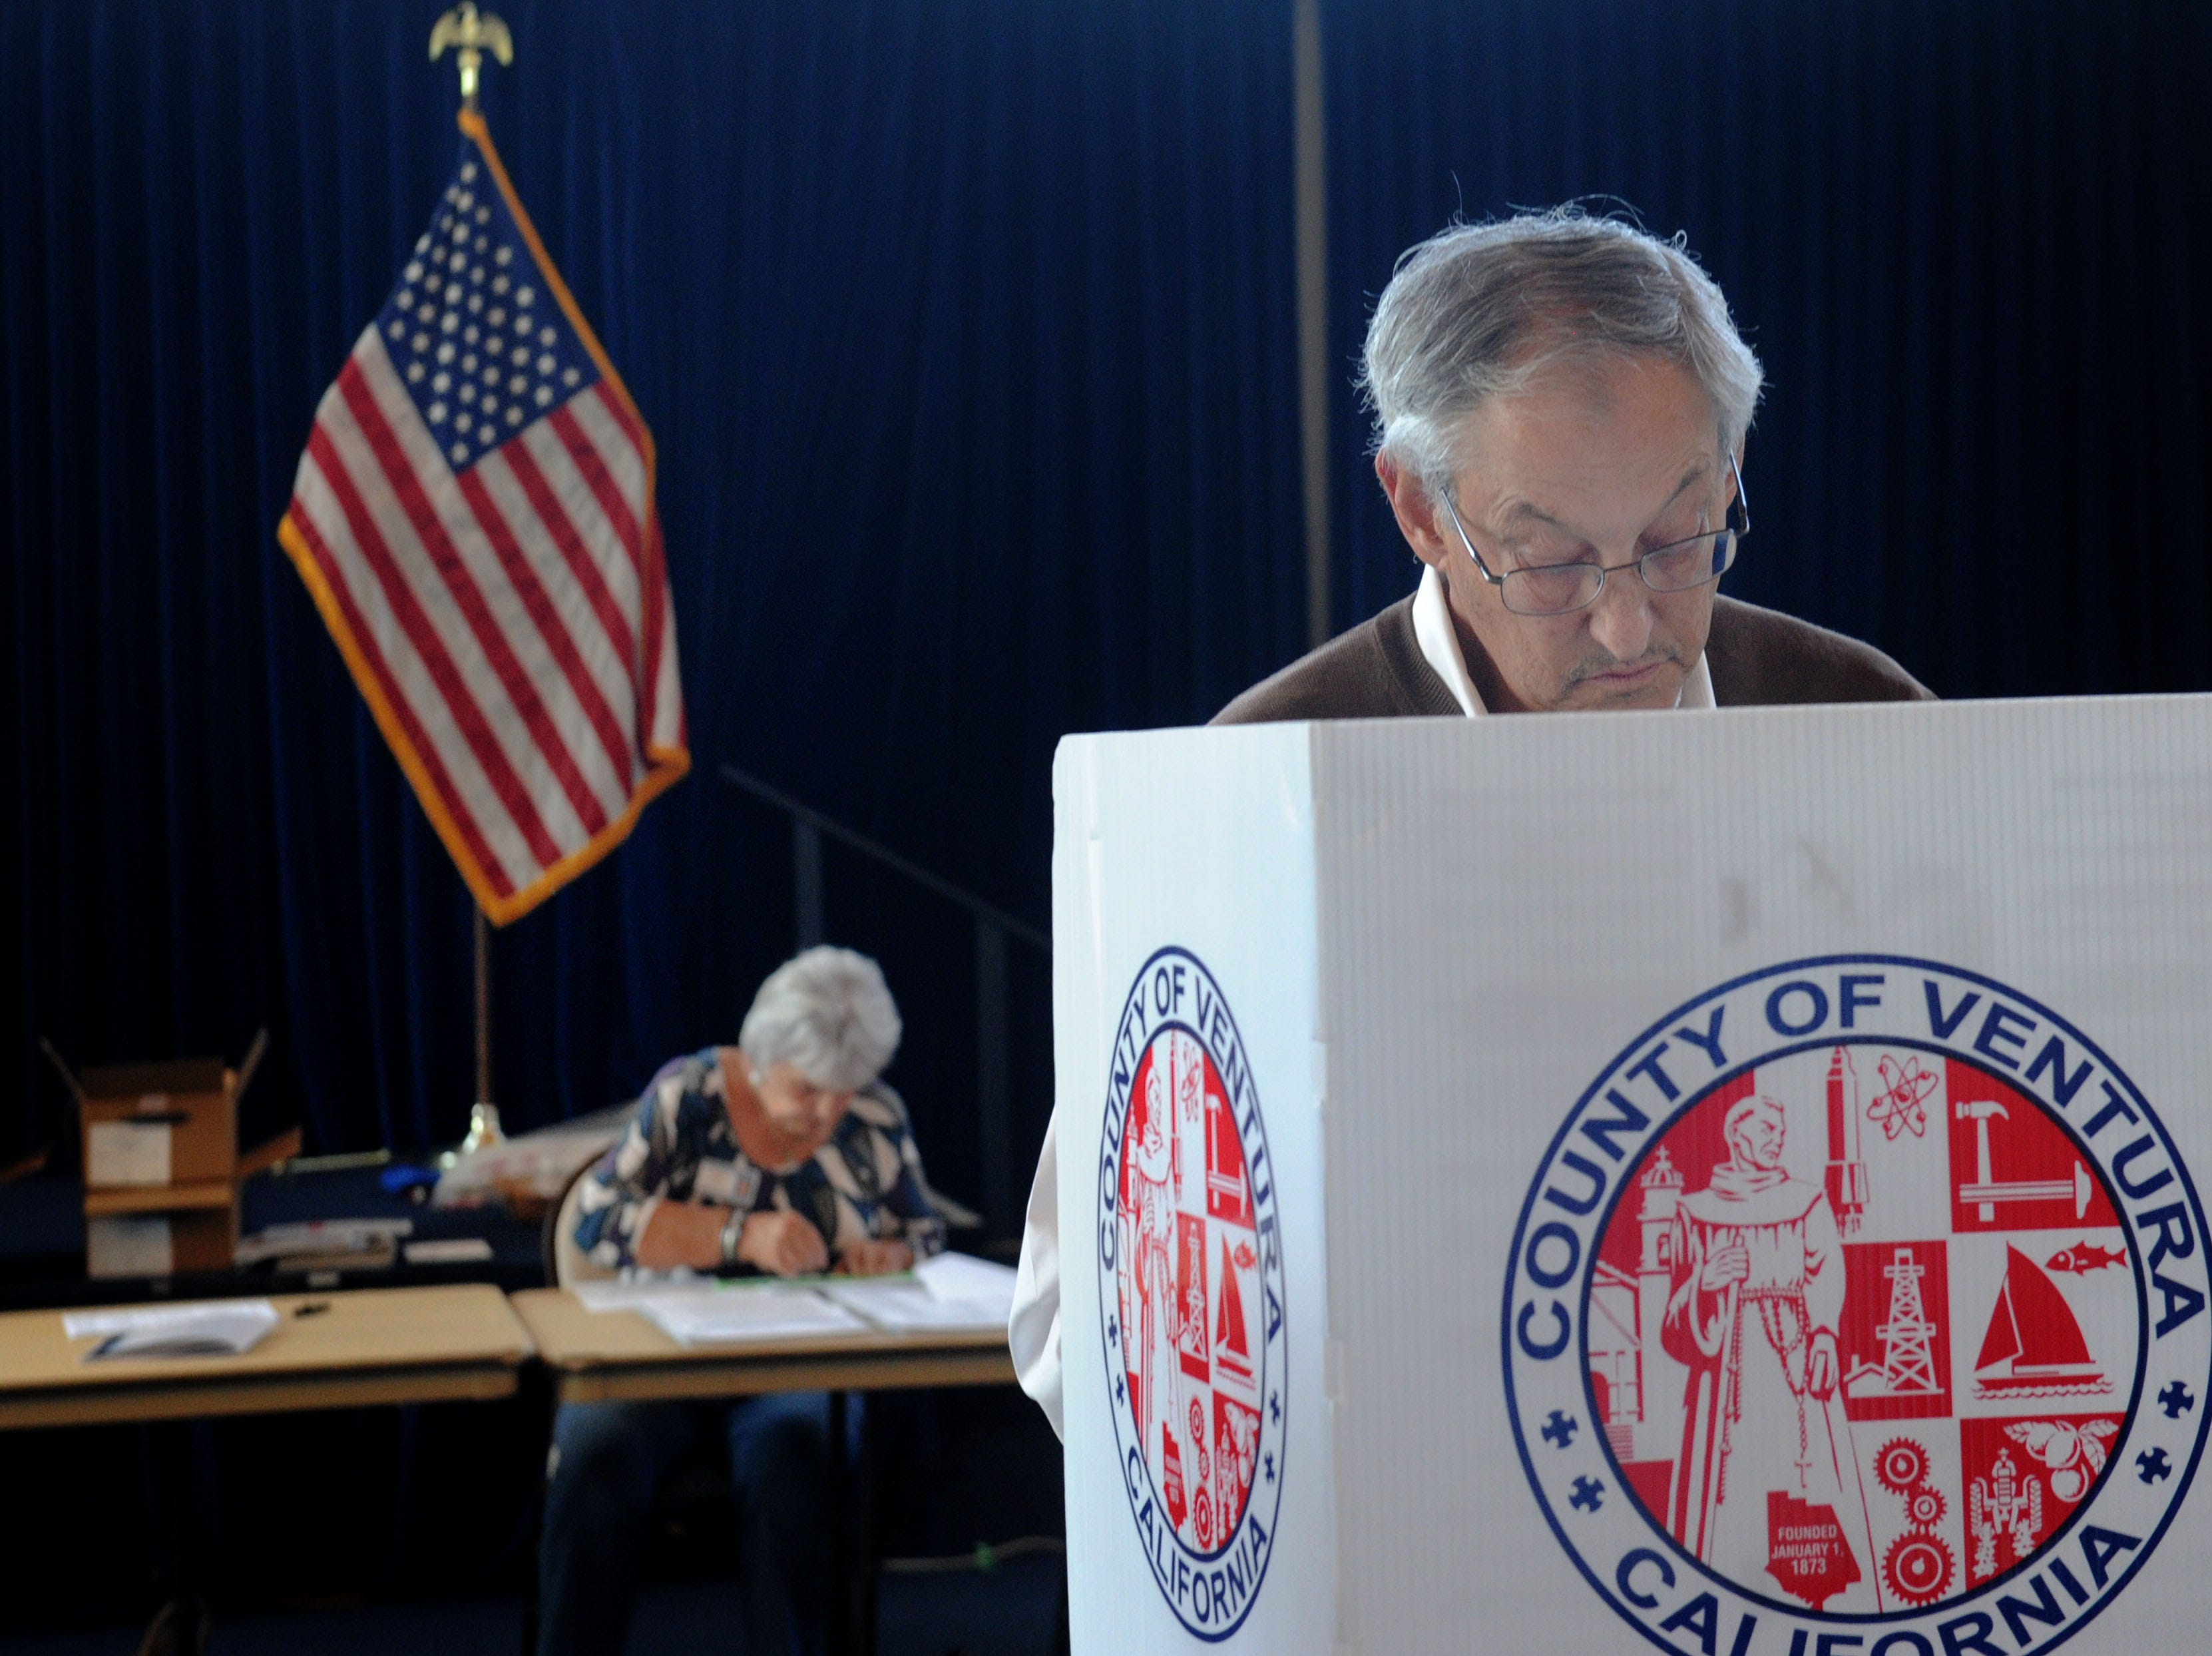 Ed Portnoy votes at the Ronald Reagan Presidential Library & Museum in Simi Valley. The library had a steady stream of voters.